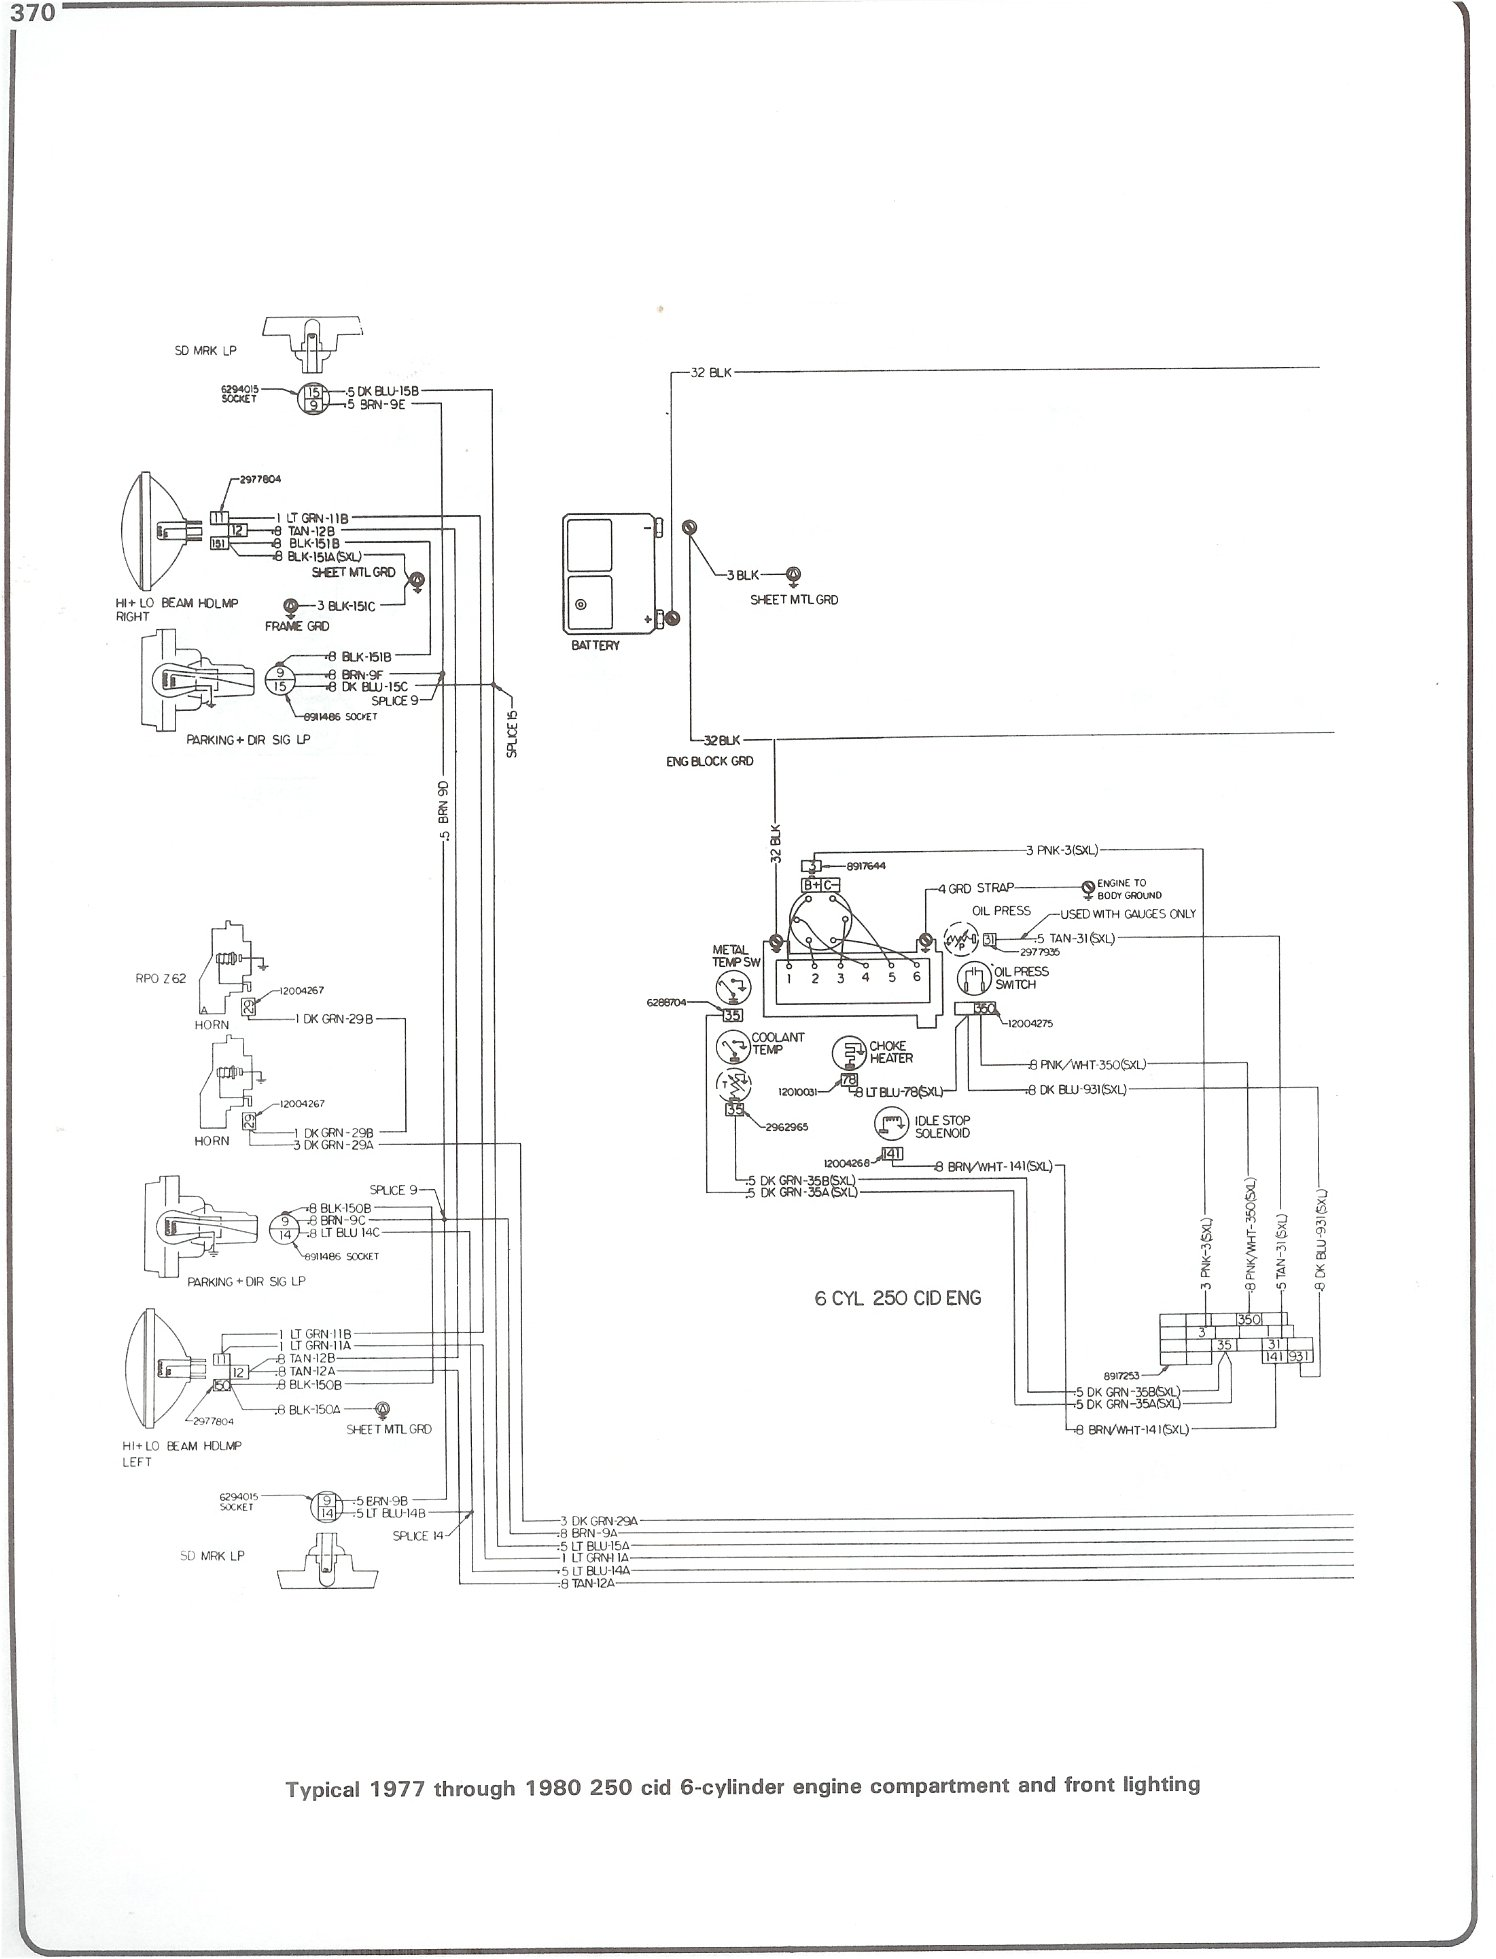 [SCHEMATICS_4HG]  Complete 73-87 Wiring Diagrams | Light Switch Wiring Diagram 1981 C10 |  | 73-87 Chevy Trucks